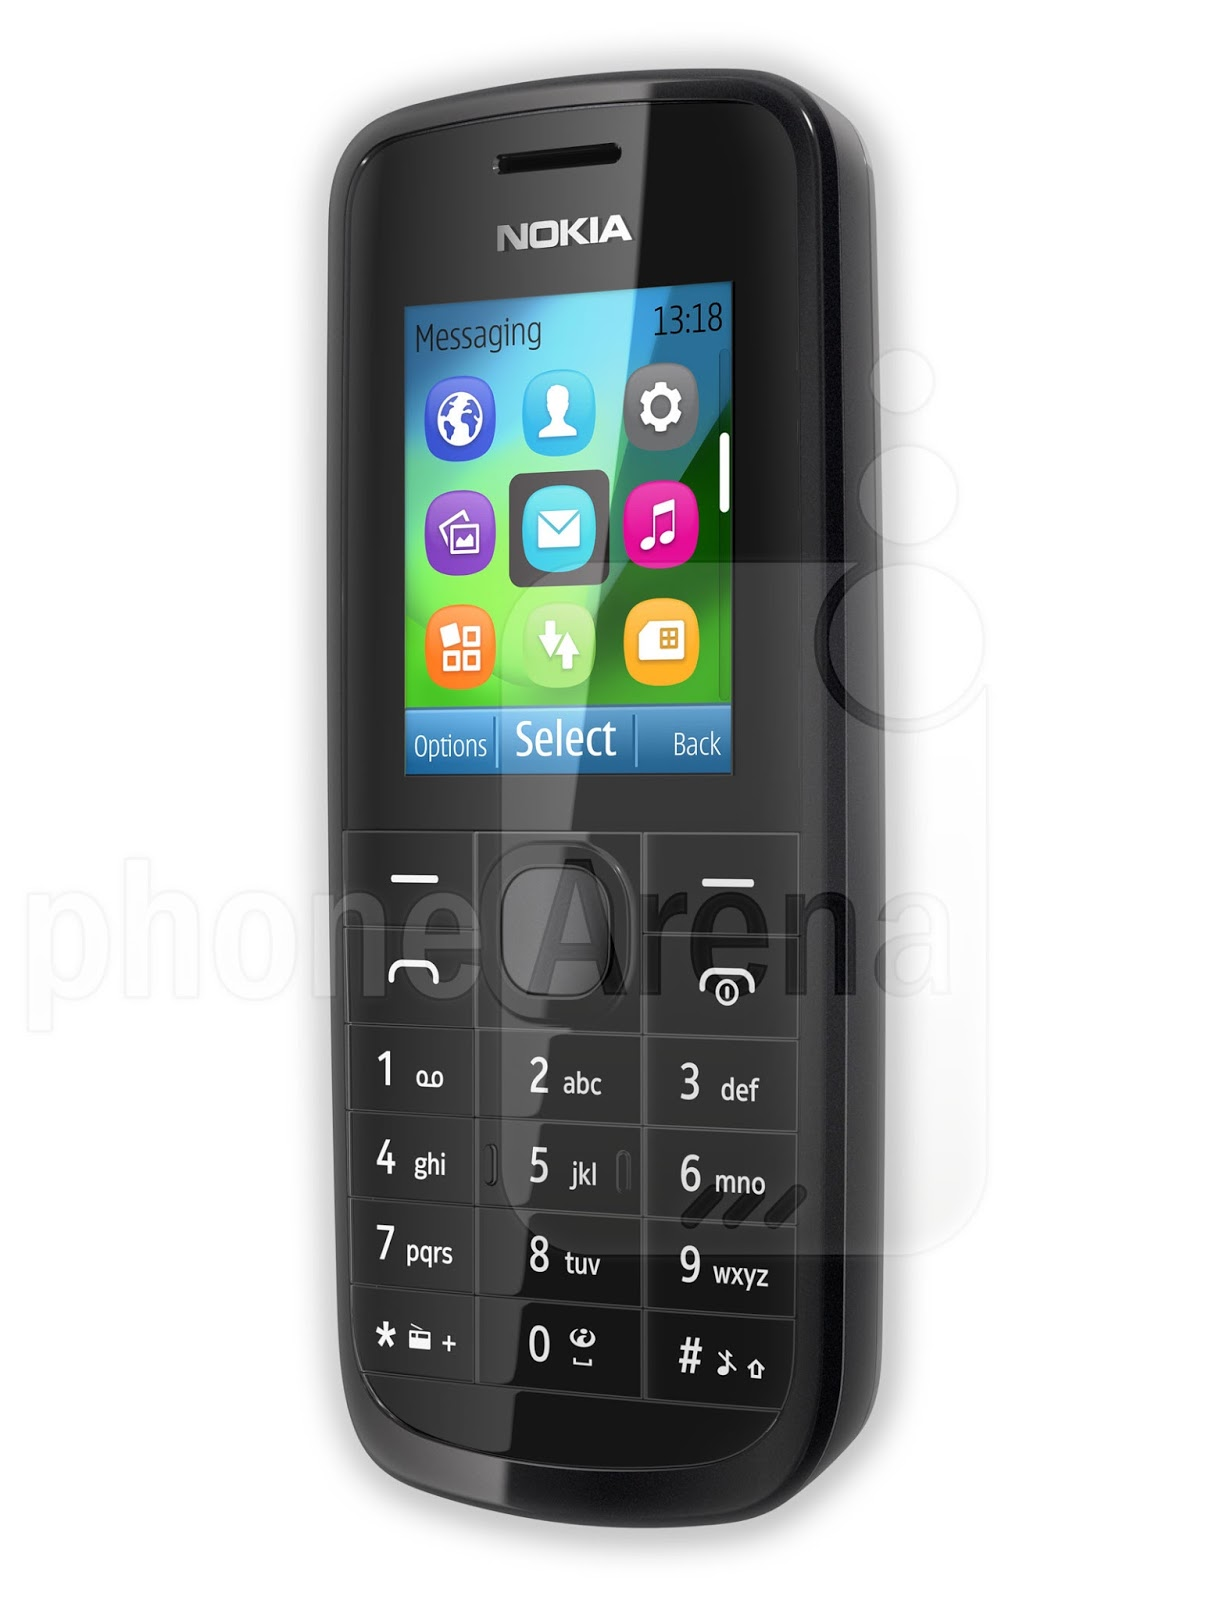 nokia 113 user manual guide the free download manual guide pdf rh manualsguide pdf blogspot com BlackBerry Mobile Phones BlackBerry Mobile Phones